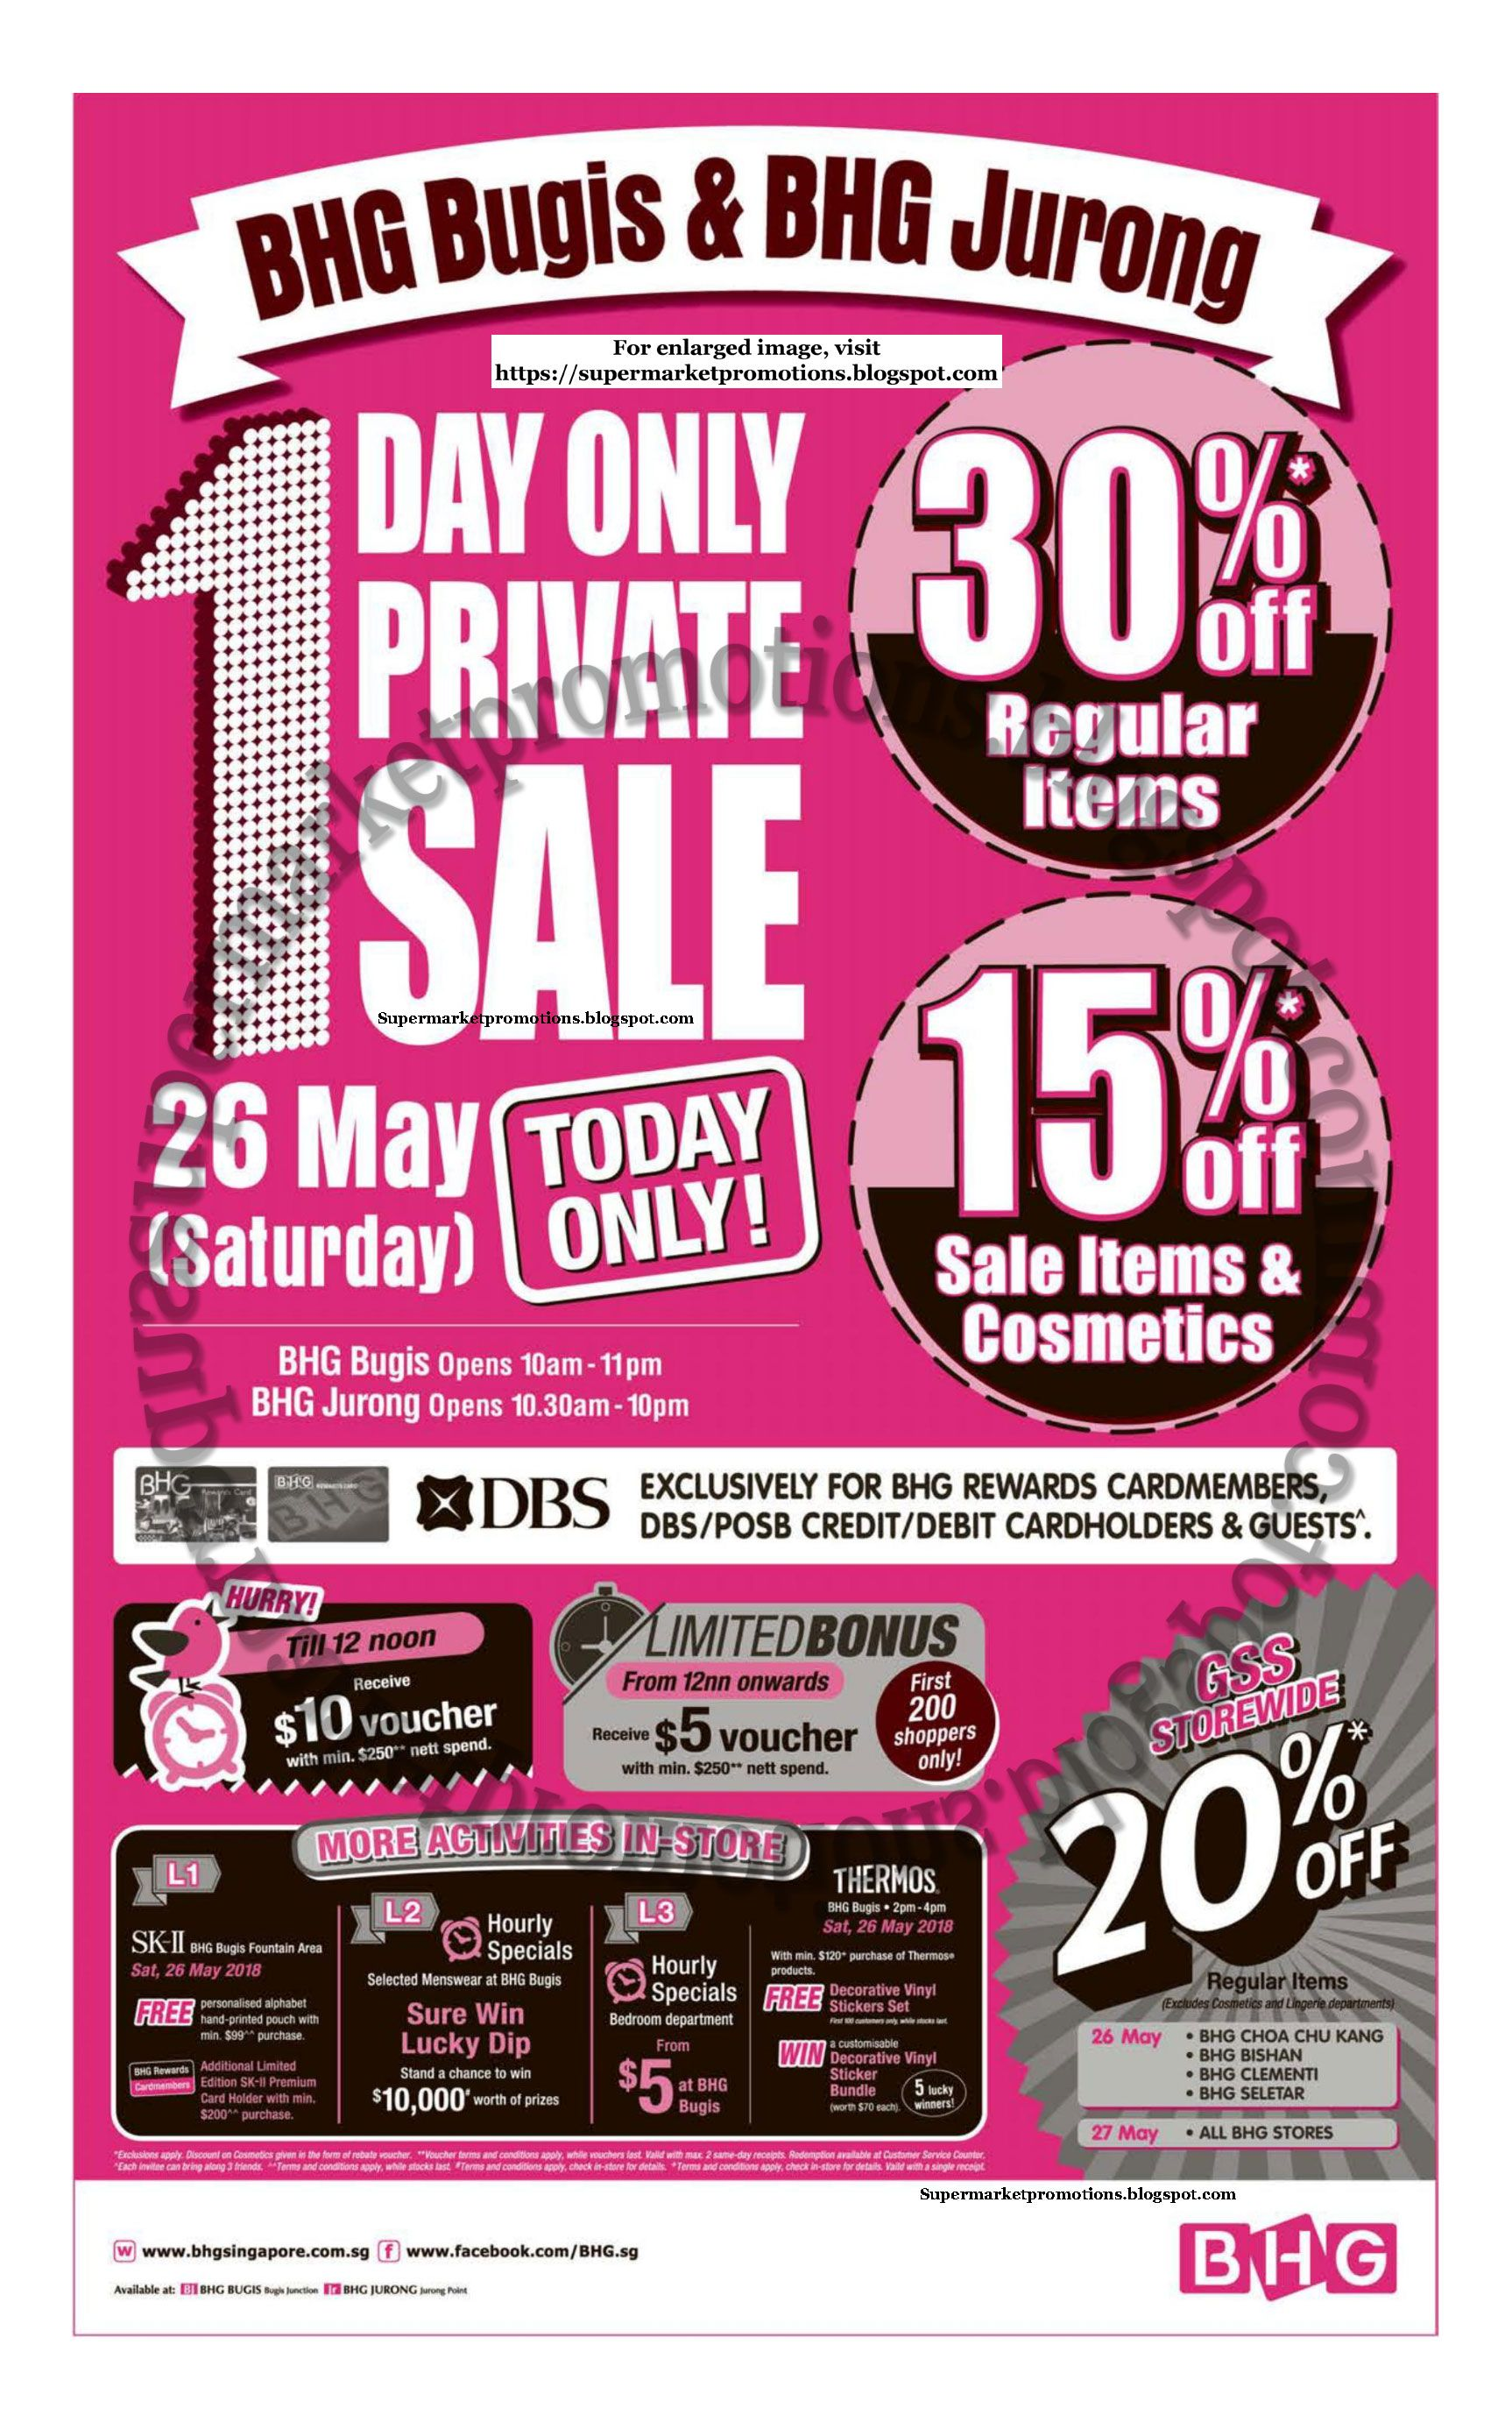 b494144bd7b59 BHG Bugis & Jurong 1 Day Private Sale thermos, sk-II Gss Great Singapore  sale